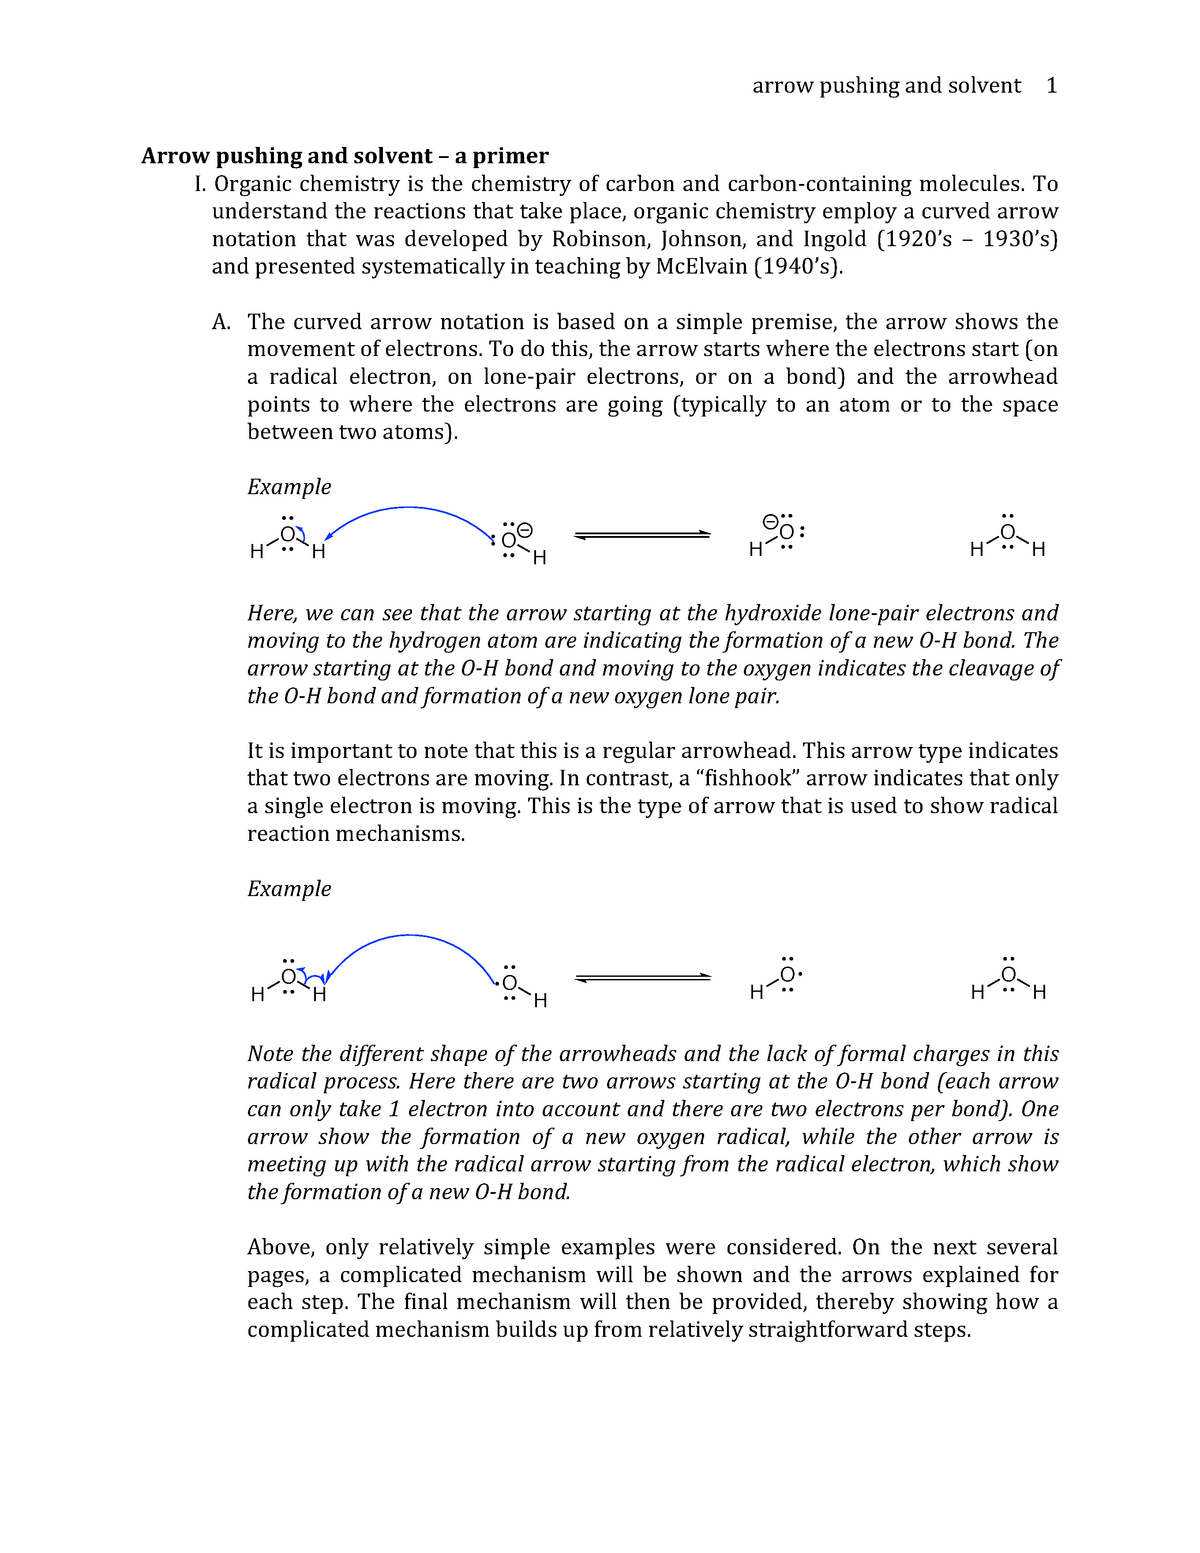 Arrow Pushing and Solvent KEY - CAS CH 203: Organic